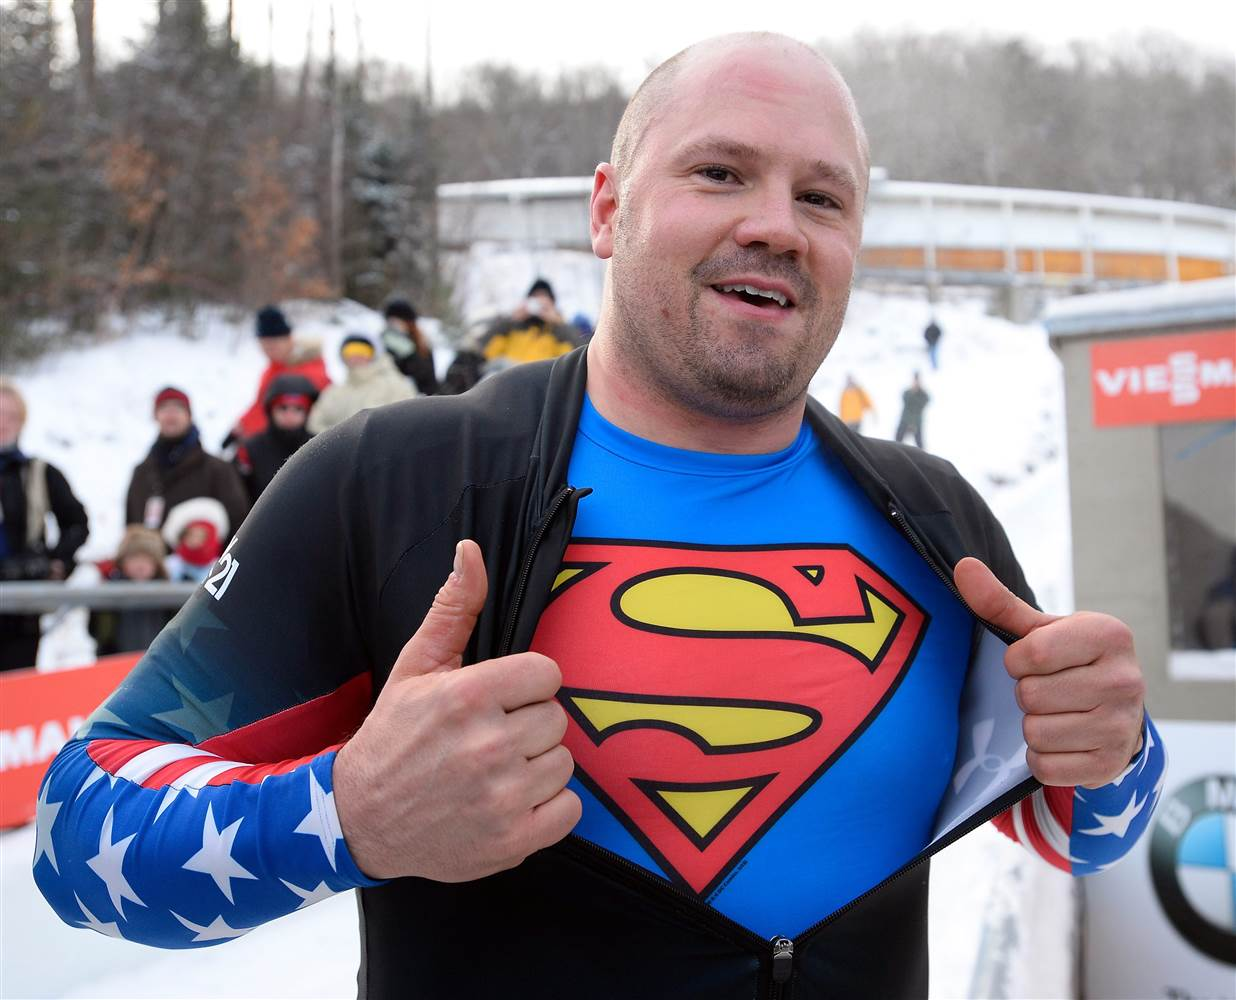 Steve Holcomb showing off the superman logo printed on his t-shirt